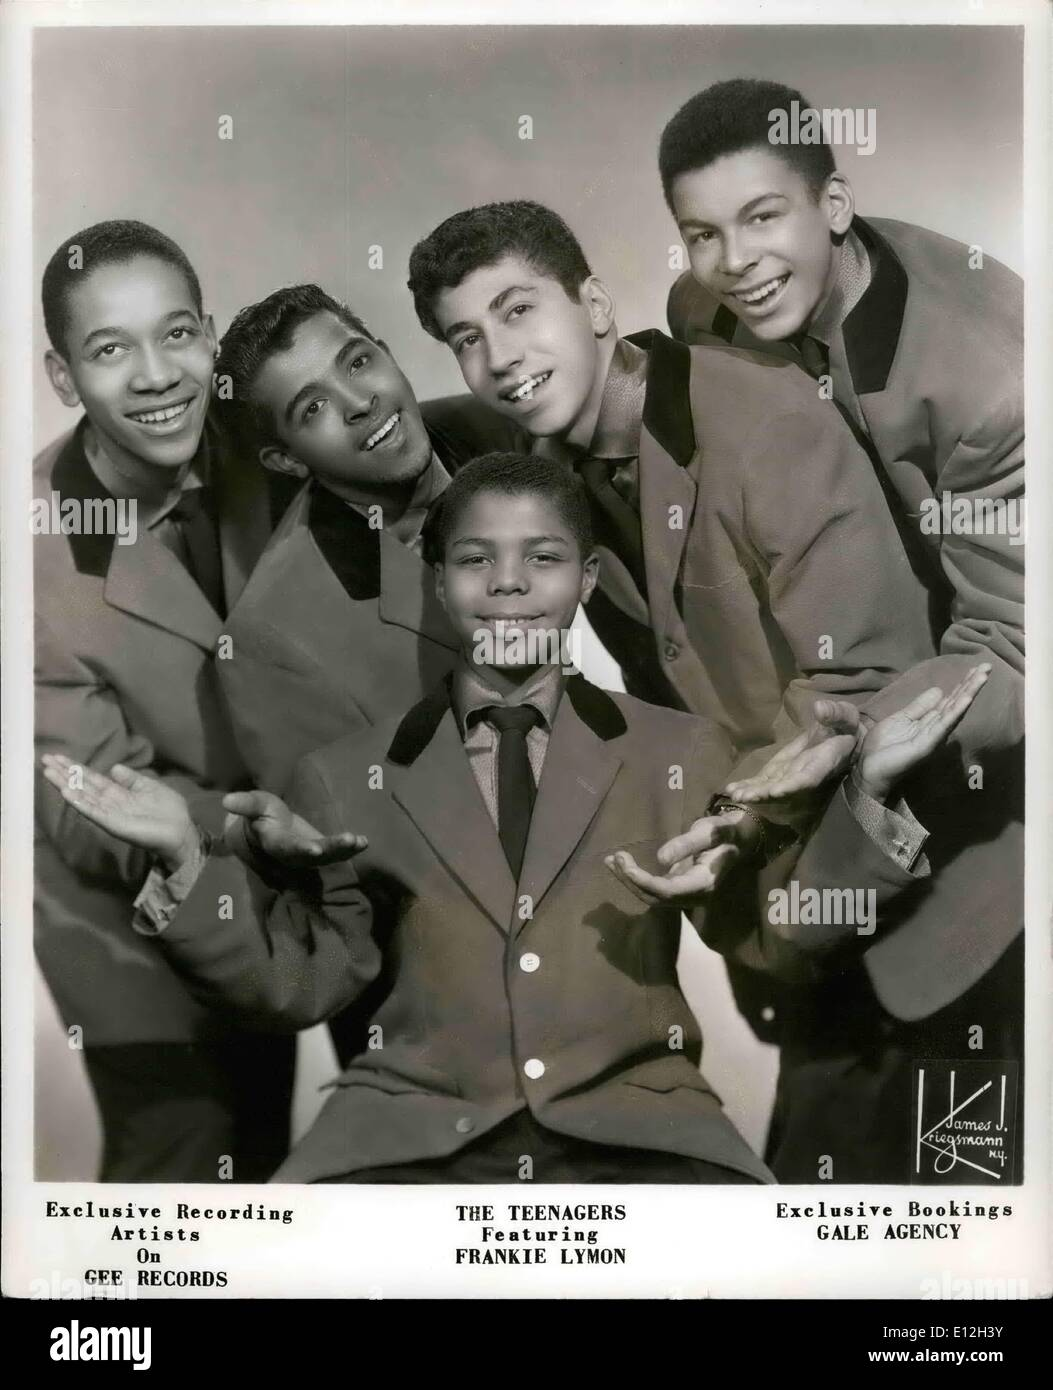 Jan. 03, 2012 - Exclusive Recording Artists On Gee Records The Teenagers Featuring Frankie Lymon Exclusive Bookings Gale Agency - Stock Image